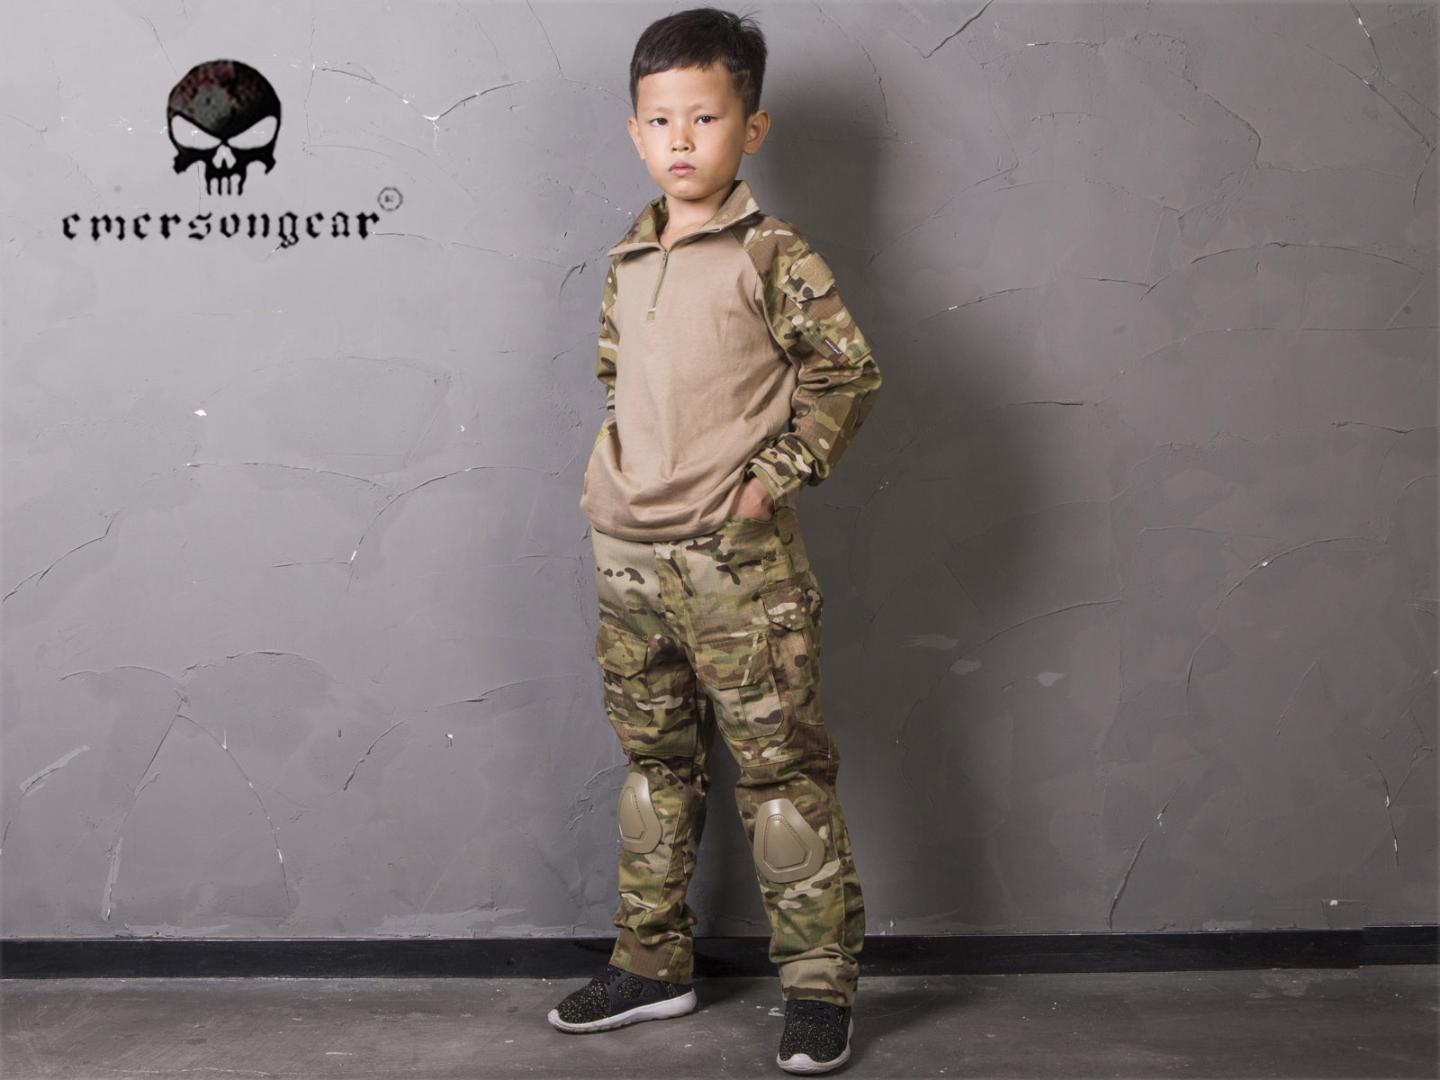 Emersongear Combat Uniform For 6Y-14Y Children Pants and Shirts Suit Kids BDU Tactical Gear Hunting Multicam EM6895